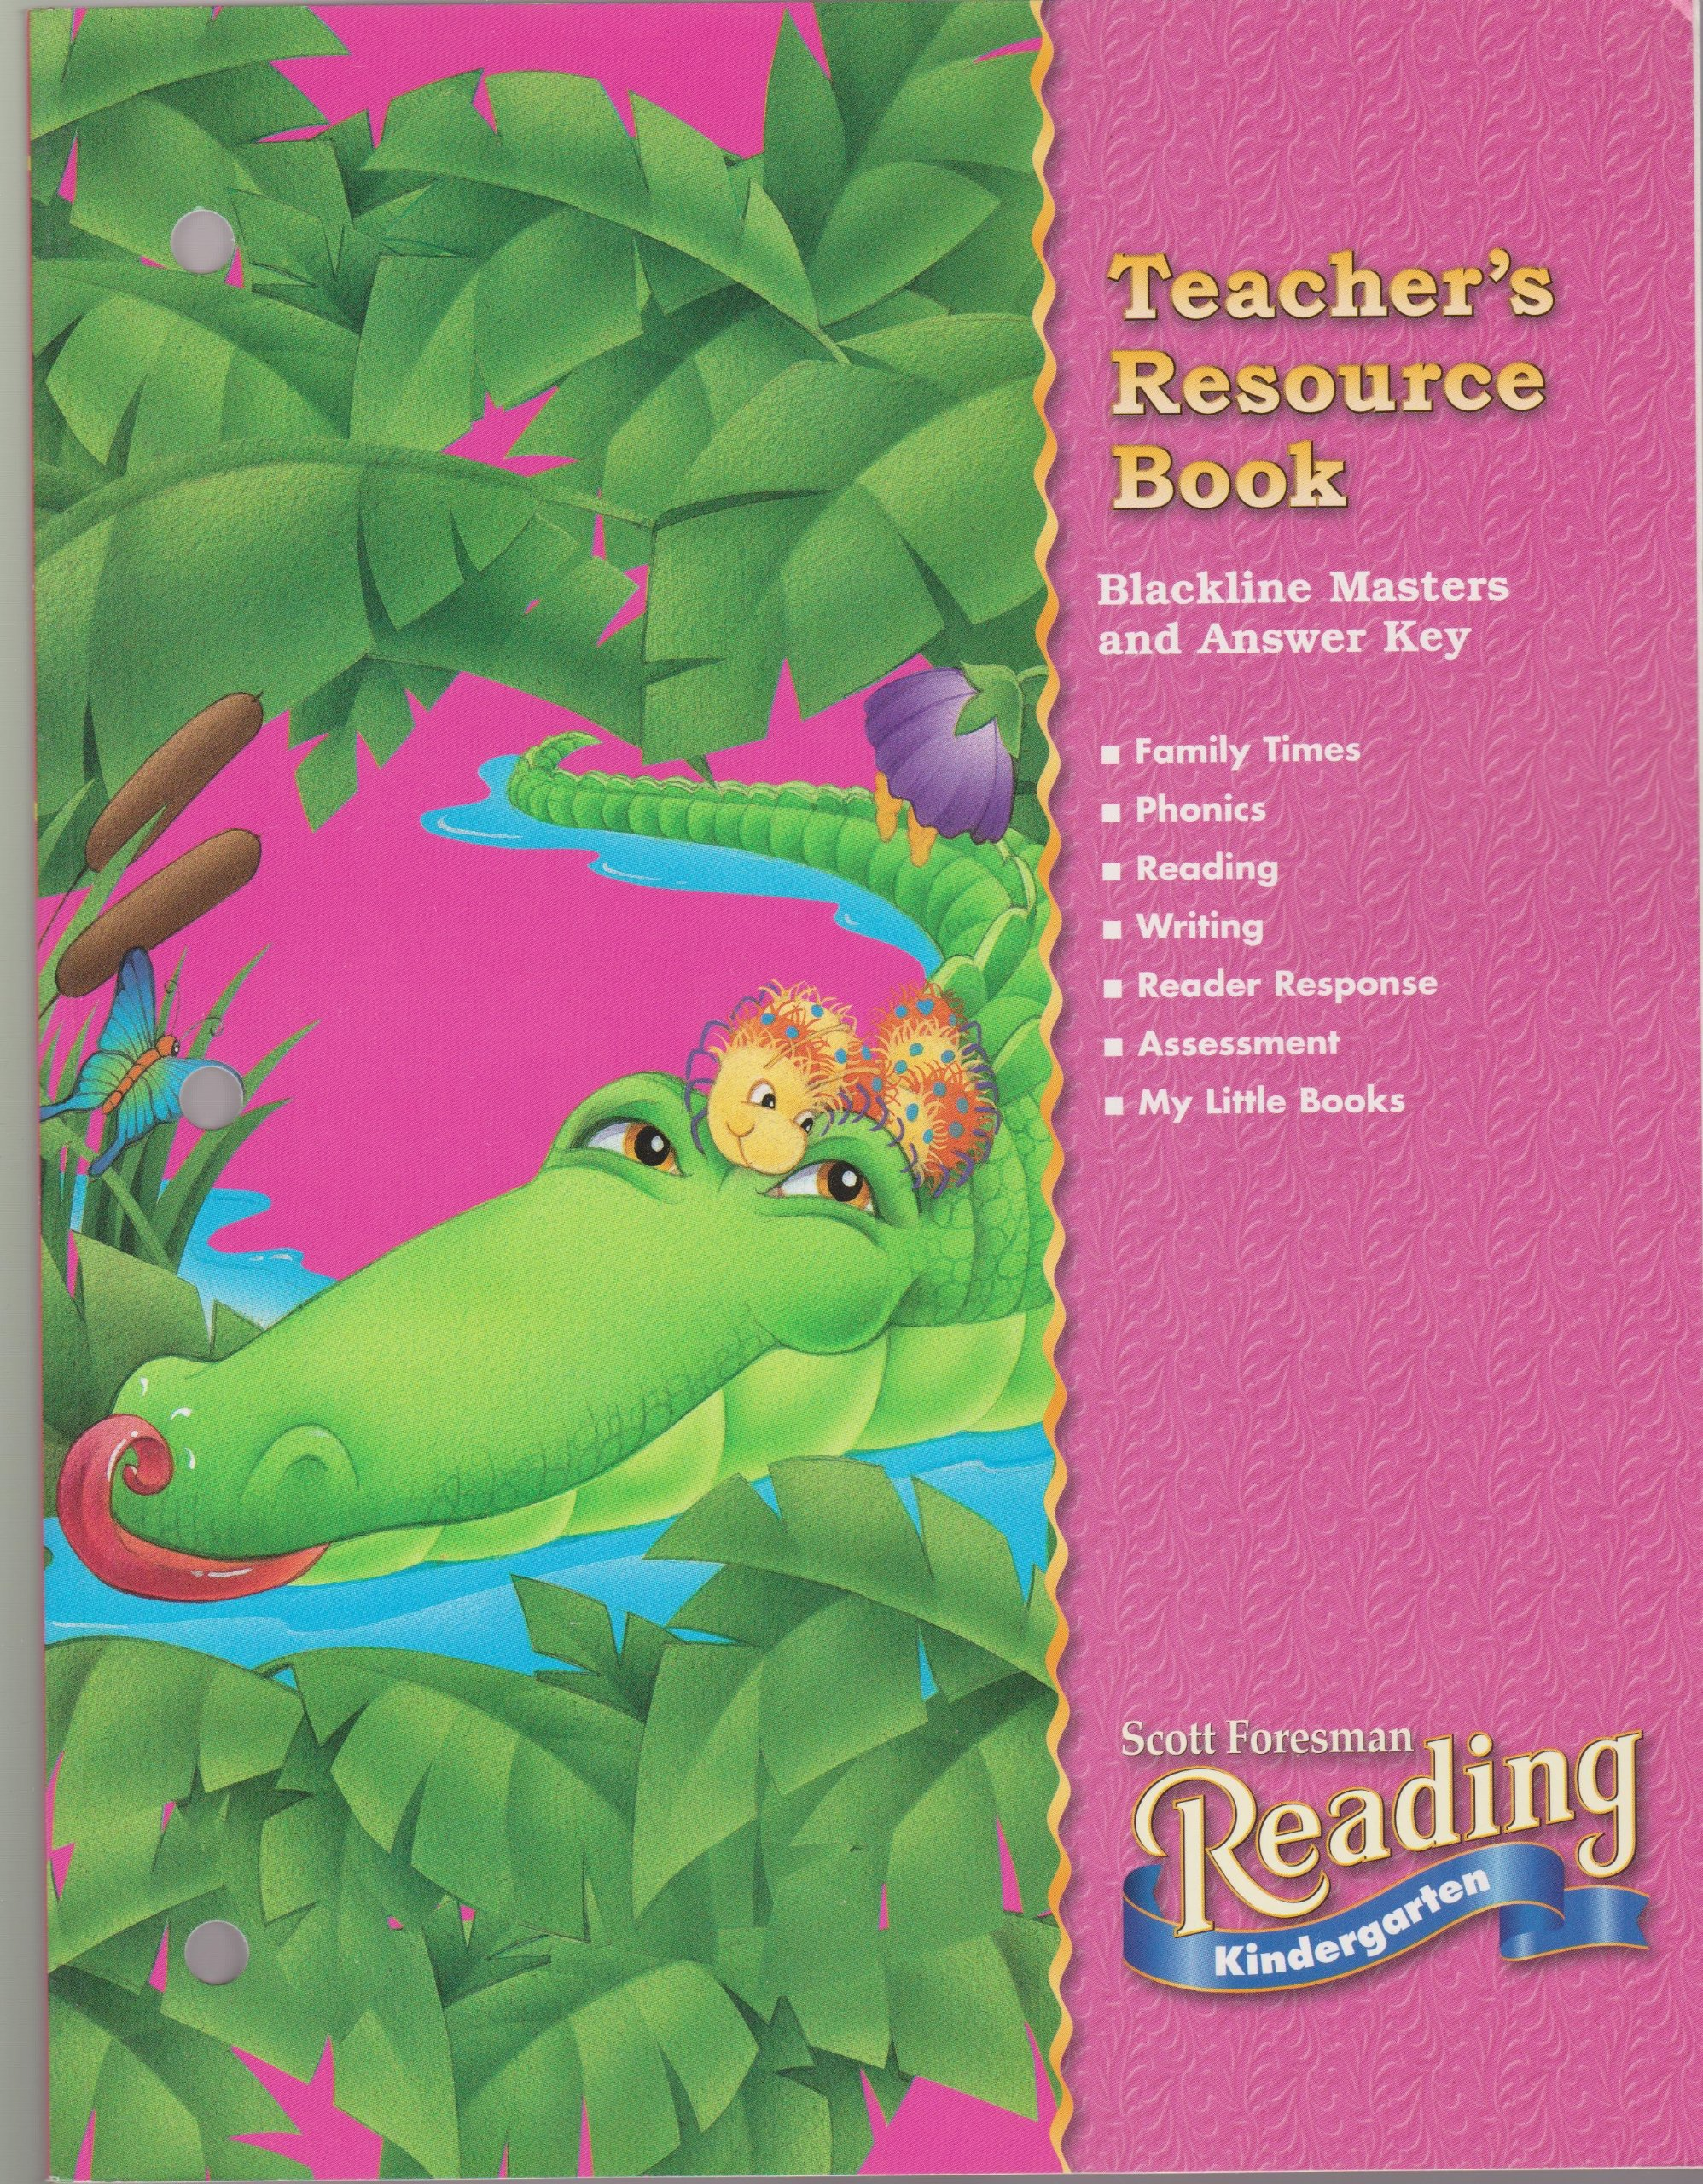 Teacher's Resource Book(reading Kindergarten): Scott Foresman:  9780328040568: Amazon.com: Books